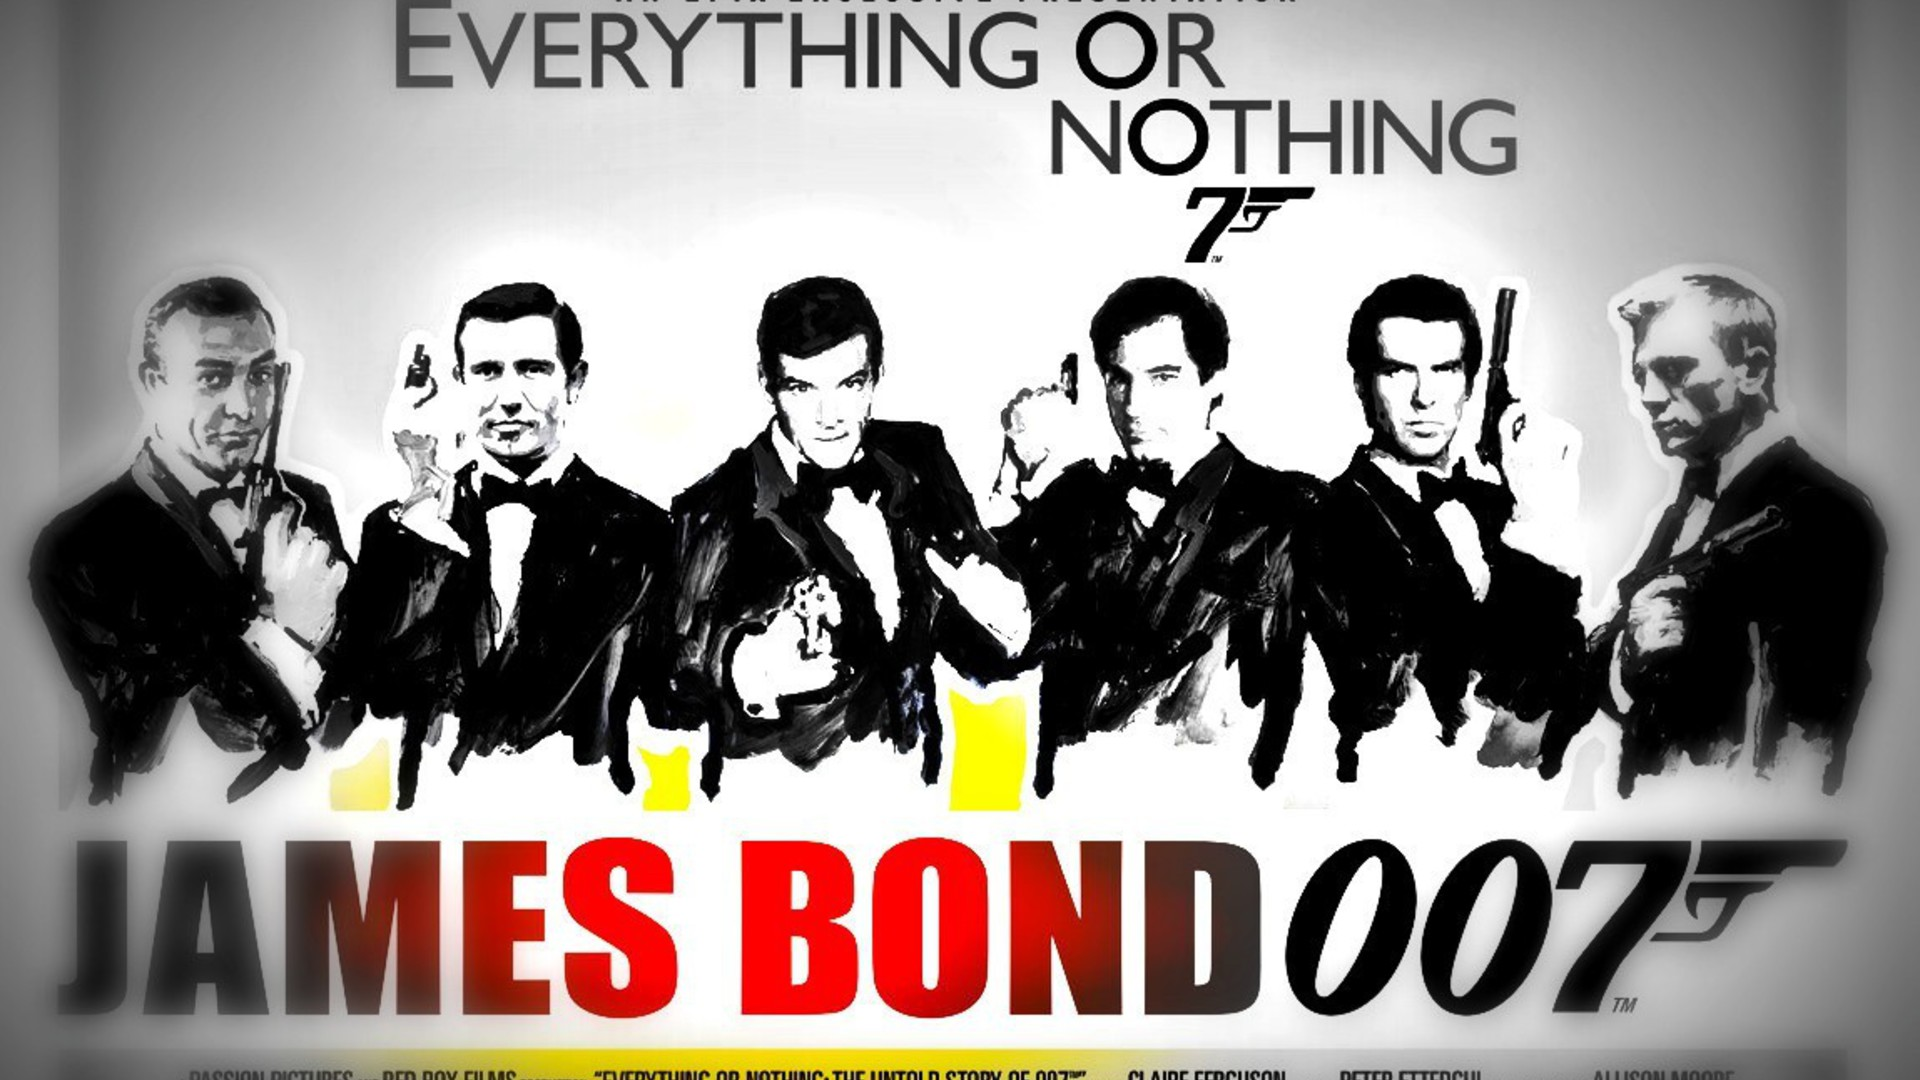 james bond computer wallpapers-#32